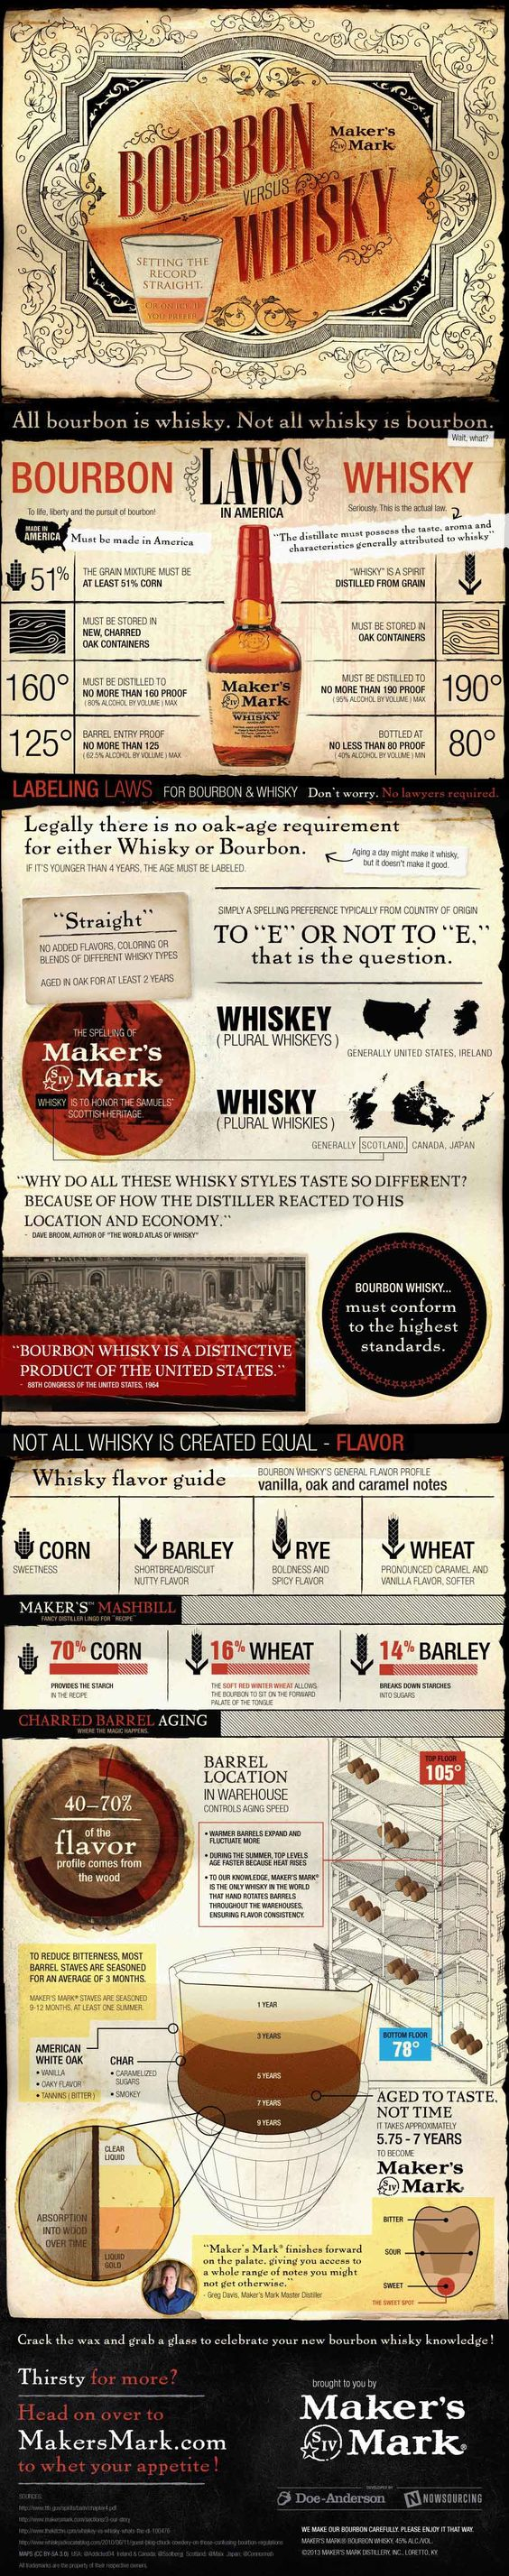 One of the best infographic-type breakdowns on a very pleasing subject #bourbon -vs- #whiskey